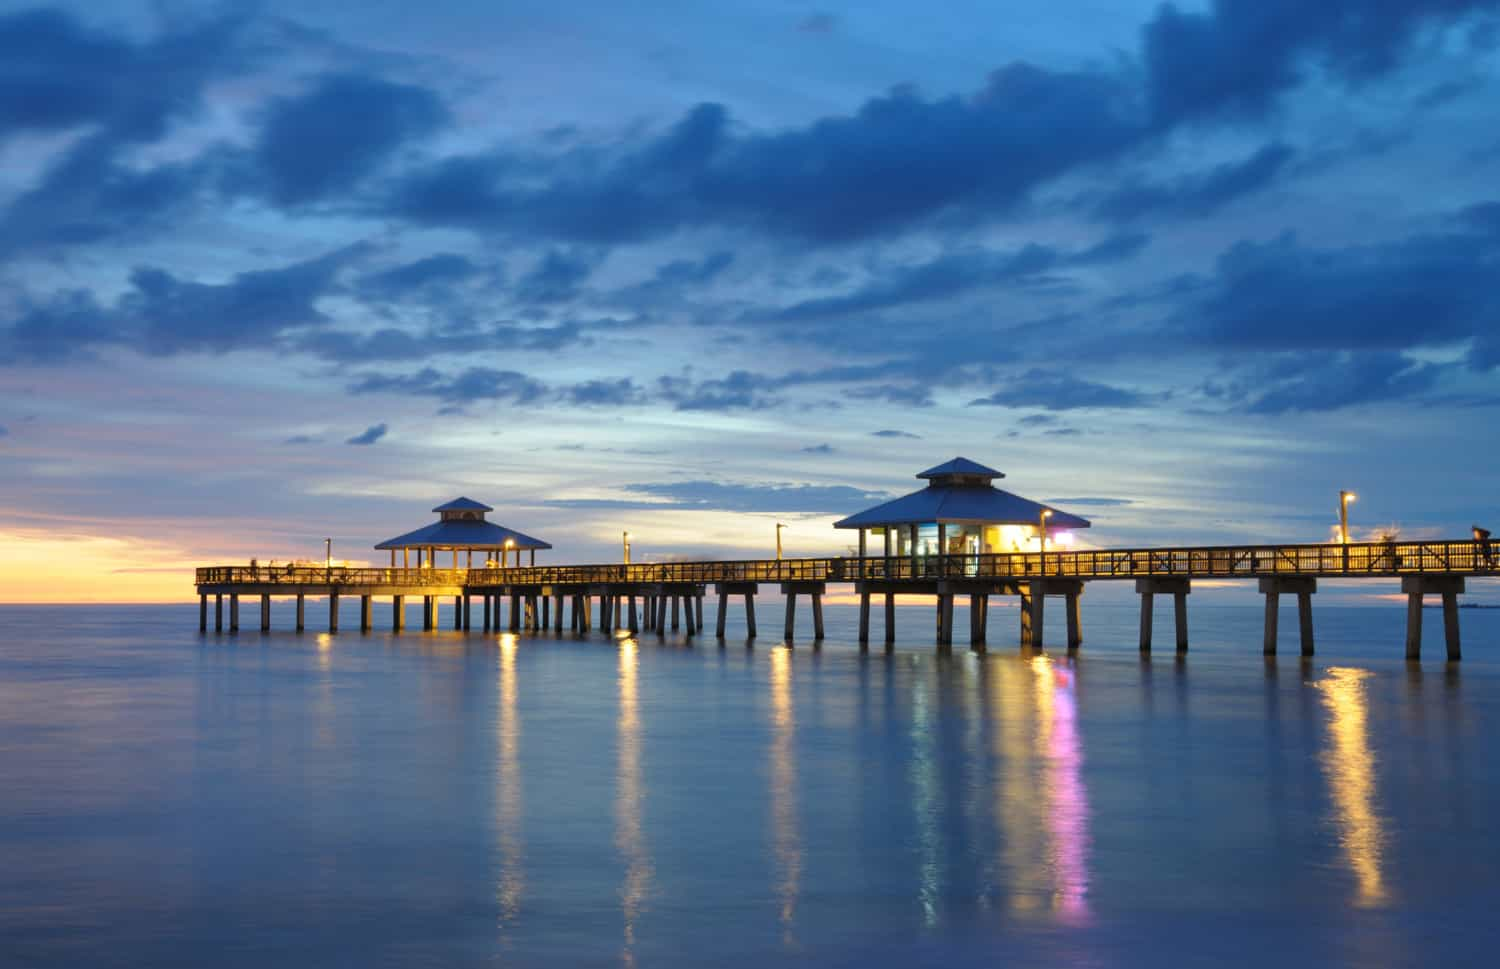 Pier at Fort Myers Beach, FL at sunset